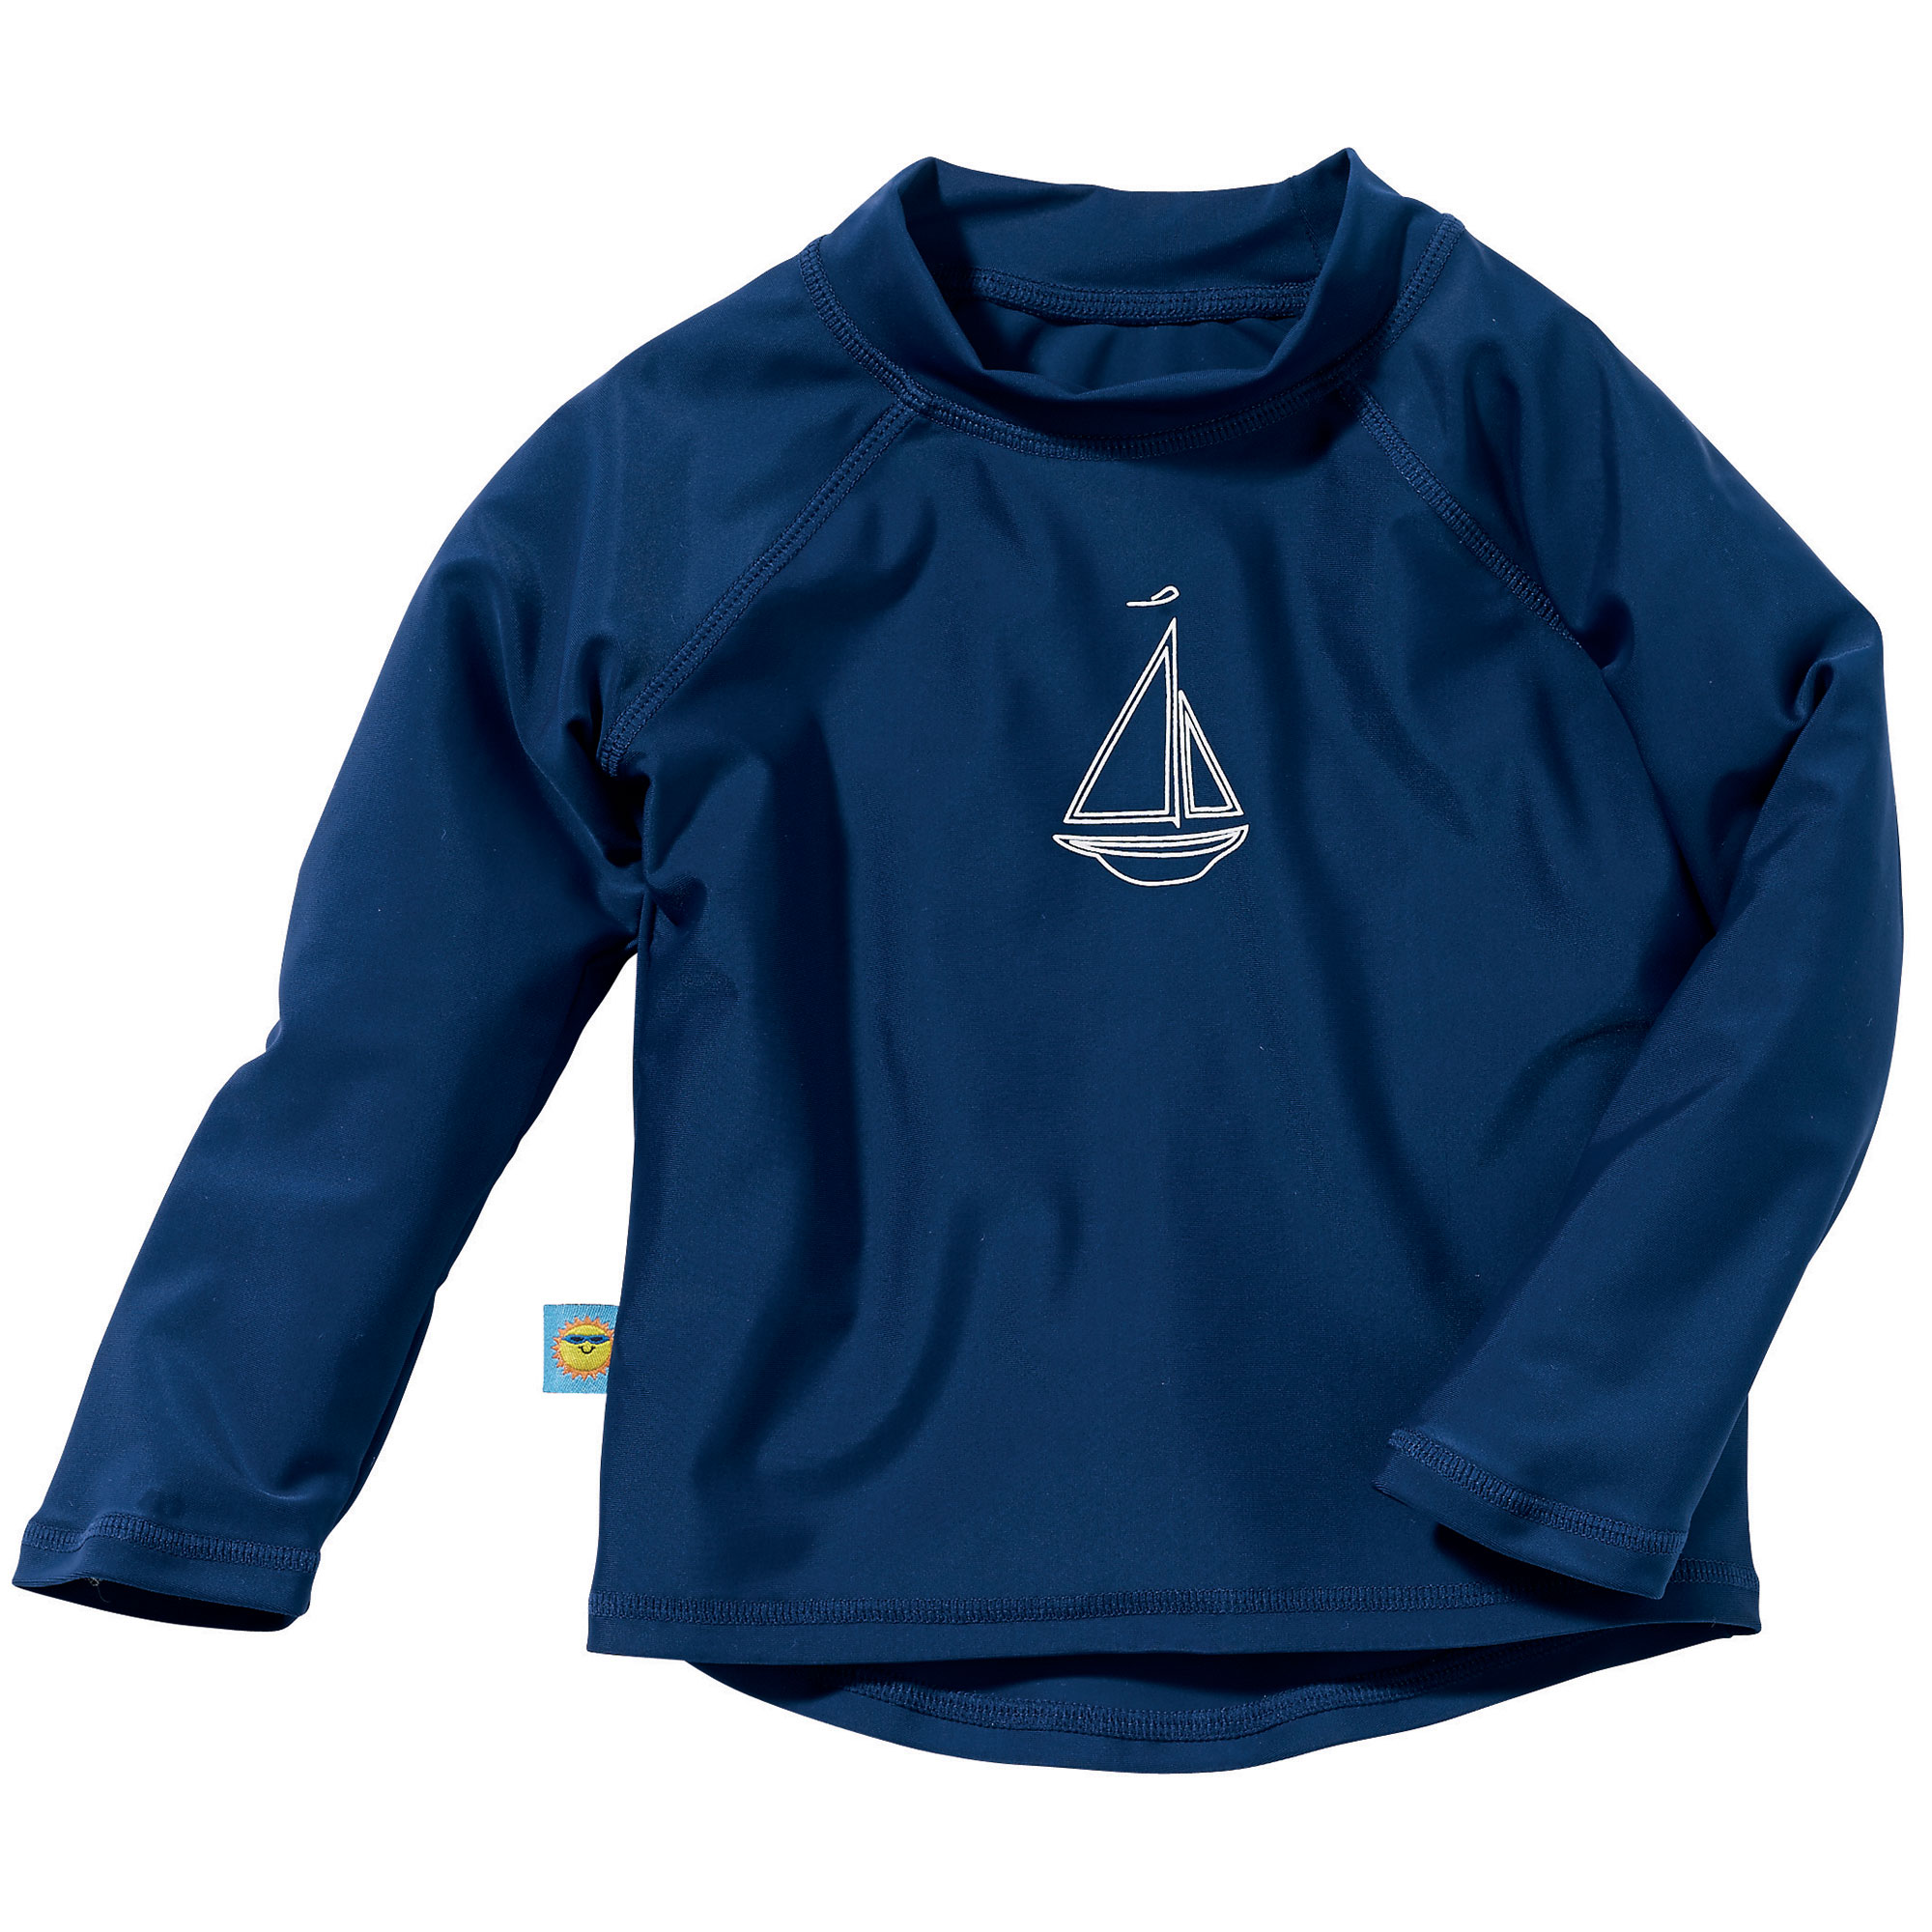 Sun Smarties Baby and Toddler Boy Rashguard - Navy Blue with Sailboat - Long Sleeve